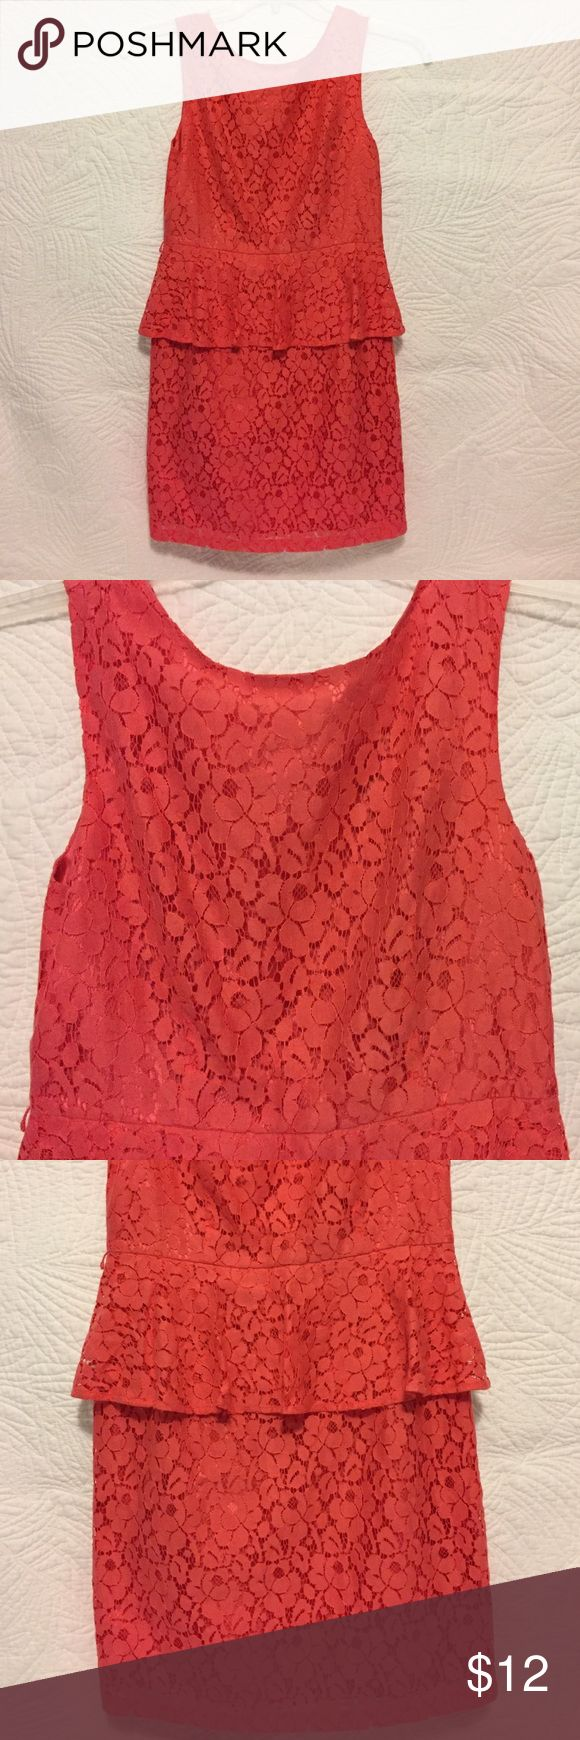 Forever 21 Lace Dress Forever 21 Lace Dress.  Gorgeous Coral/Orange Lace Dress, Zip Up back.  32 inches shoulder to hem.  Size Medium; belt loops on each side to accessorize with a belt from your closet (no belt included); Cotton/Polyester fabric. Forever 21 Dresses